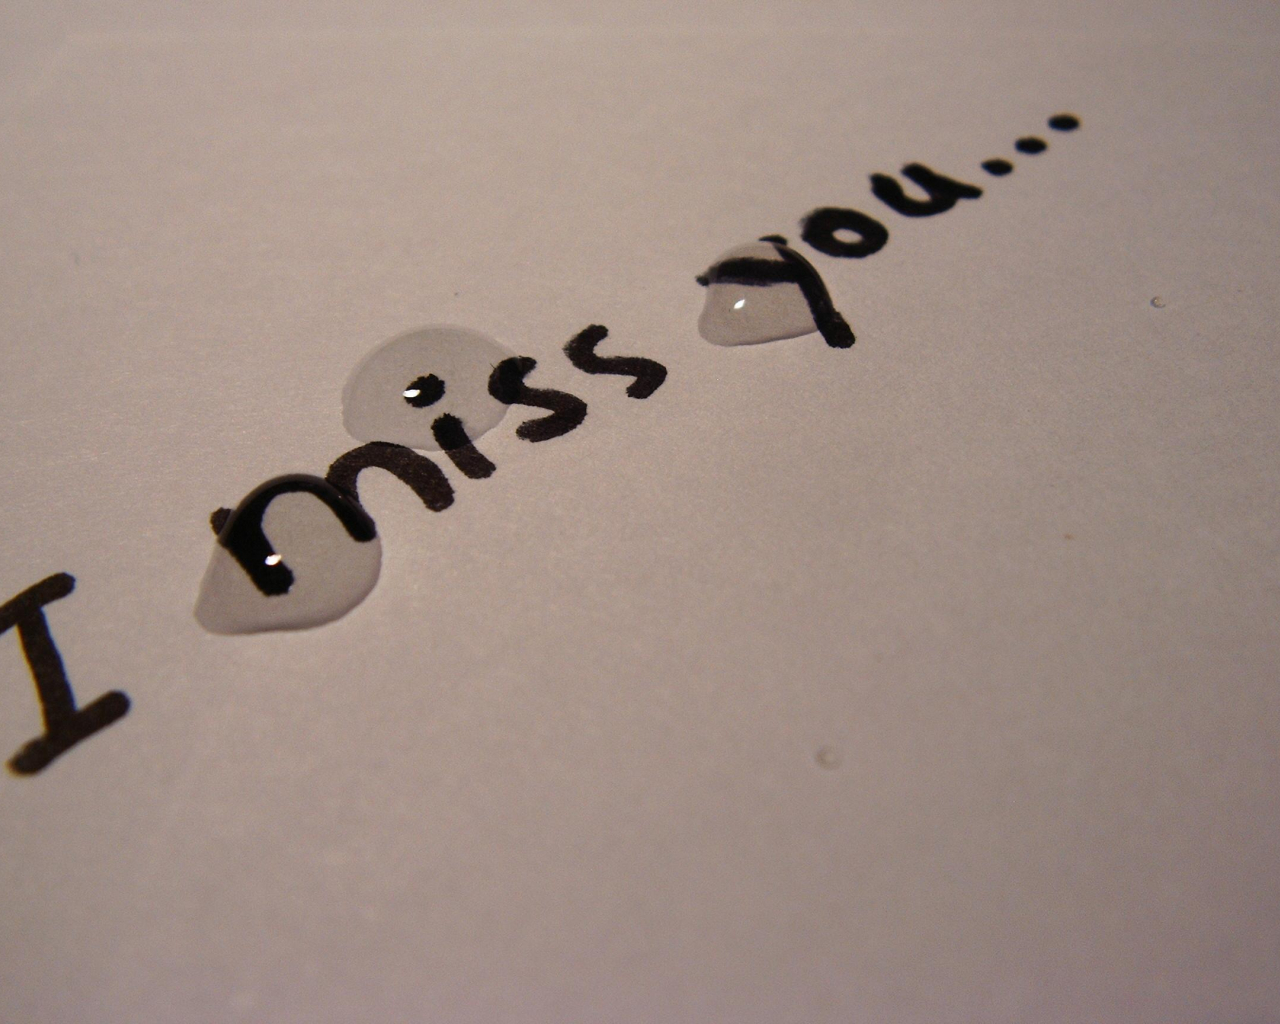 Free Download Miss U Wallpaper 60009 Hd Wallpapers Wallpapersinhqcom 2304x1728 For Your Desktop Mobile Tablet Explore 46 I Miss U Wallpaper Miss U Wallpapers For Love Miss You Wallpapers